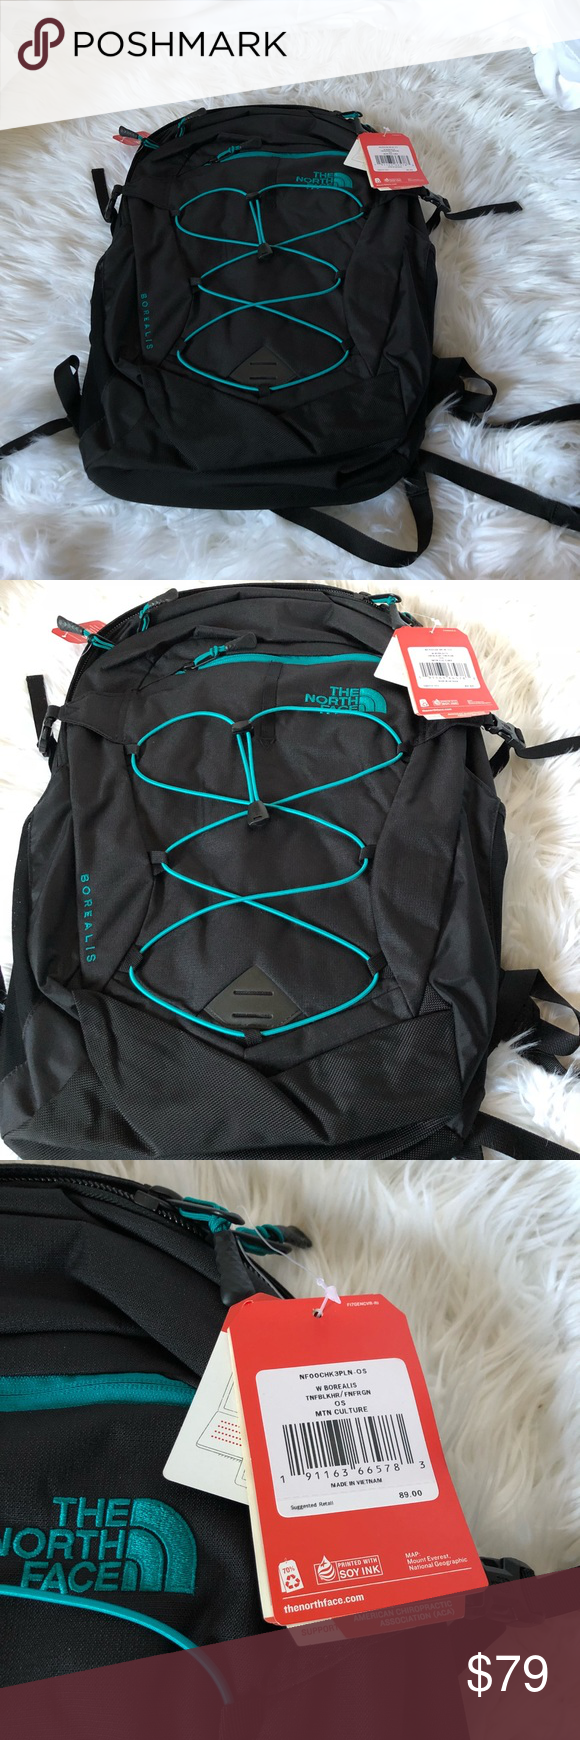 70ecb92df The North Face Borealis Black/Teal Brand new The North Face Women's ...